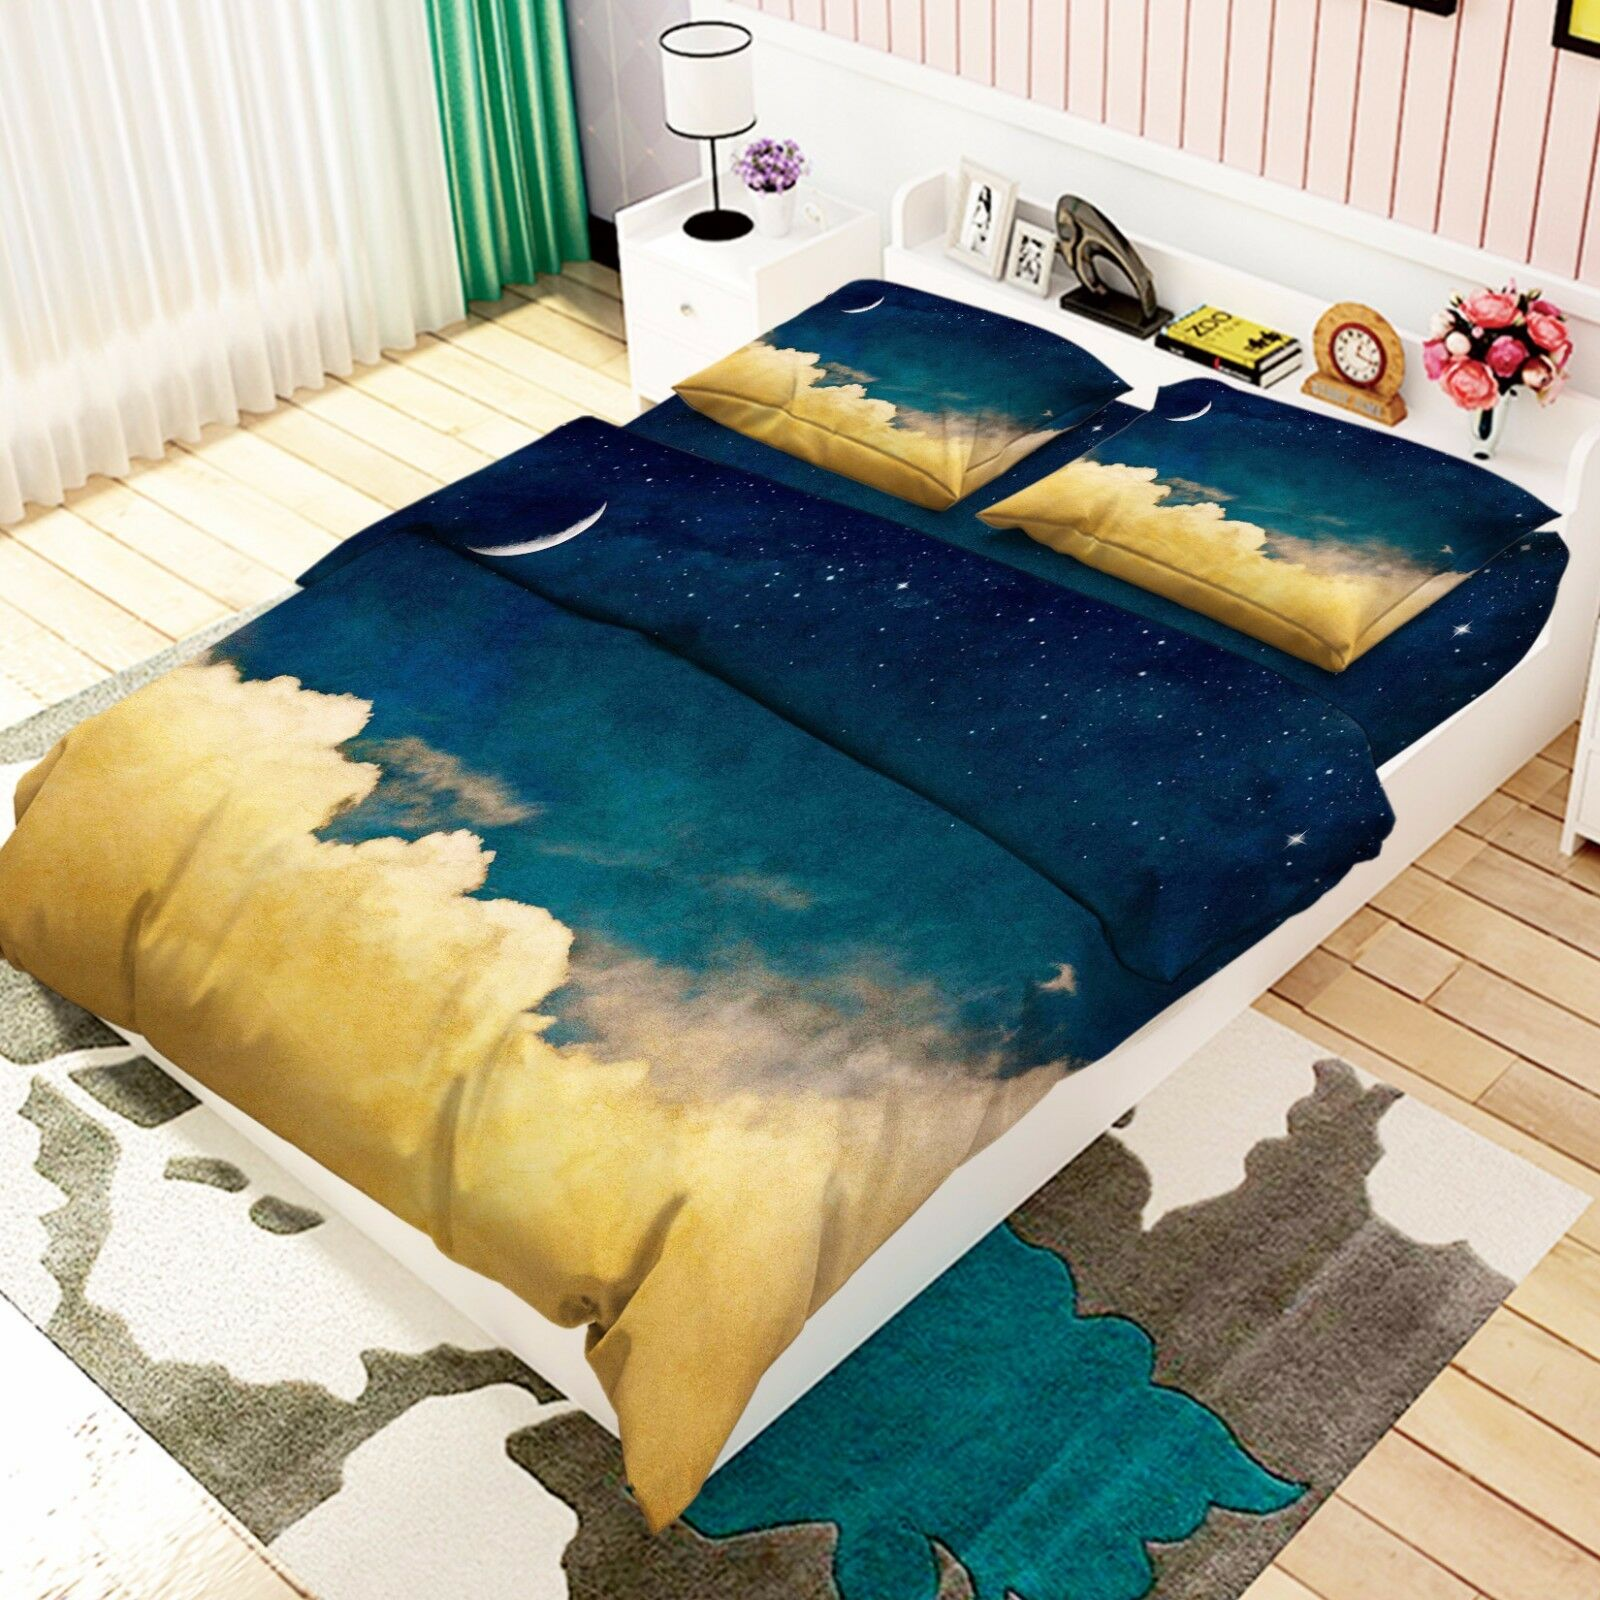 3D Starry Sky 5 Bed Pillowcases Quilt Duvet Cover Set Single Queen King AU Kyra